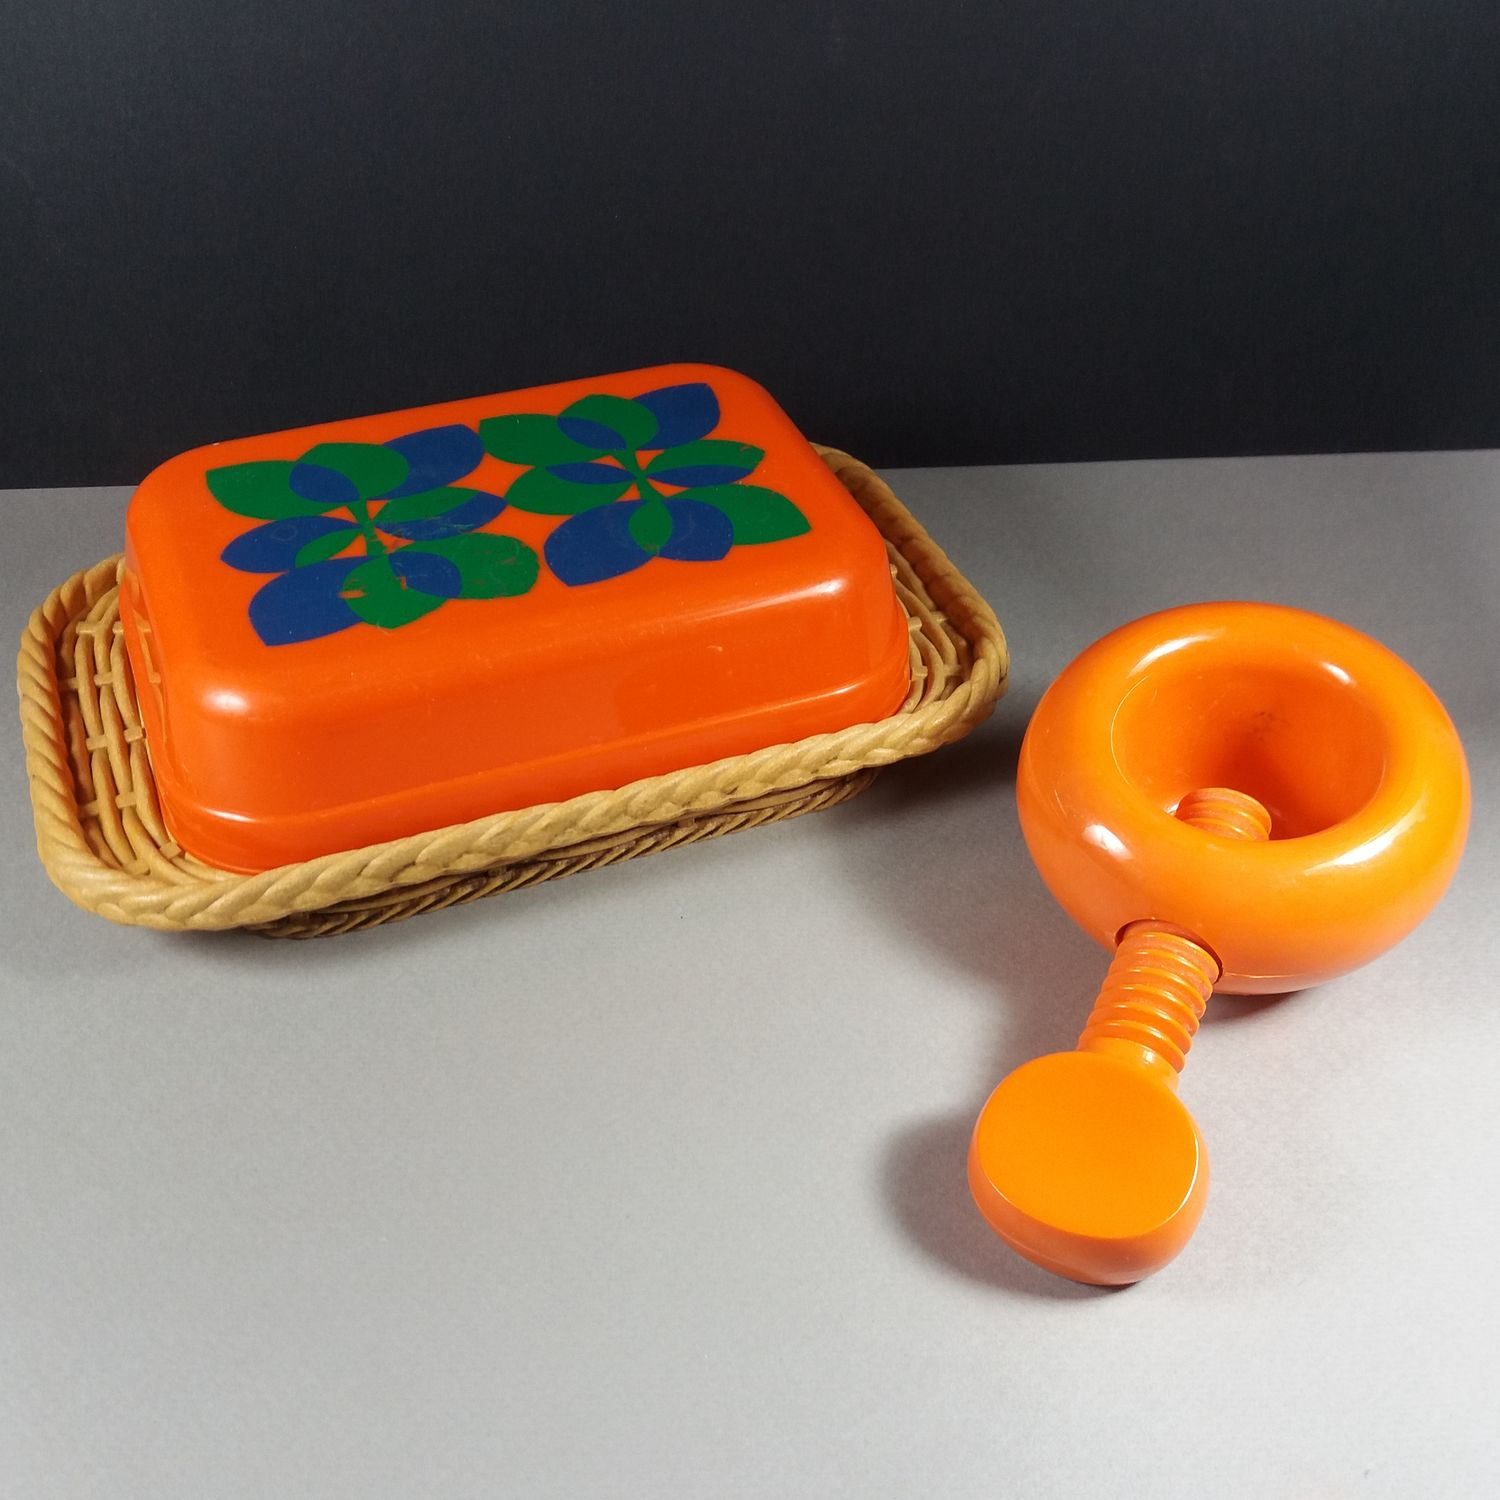 Dana Plast Denmark Orange Nutcracker & EMSA Germany Butter Tray 1970s Retro Design